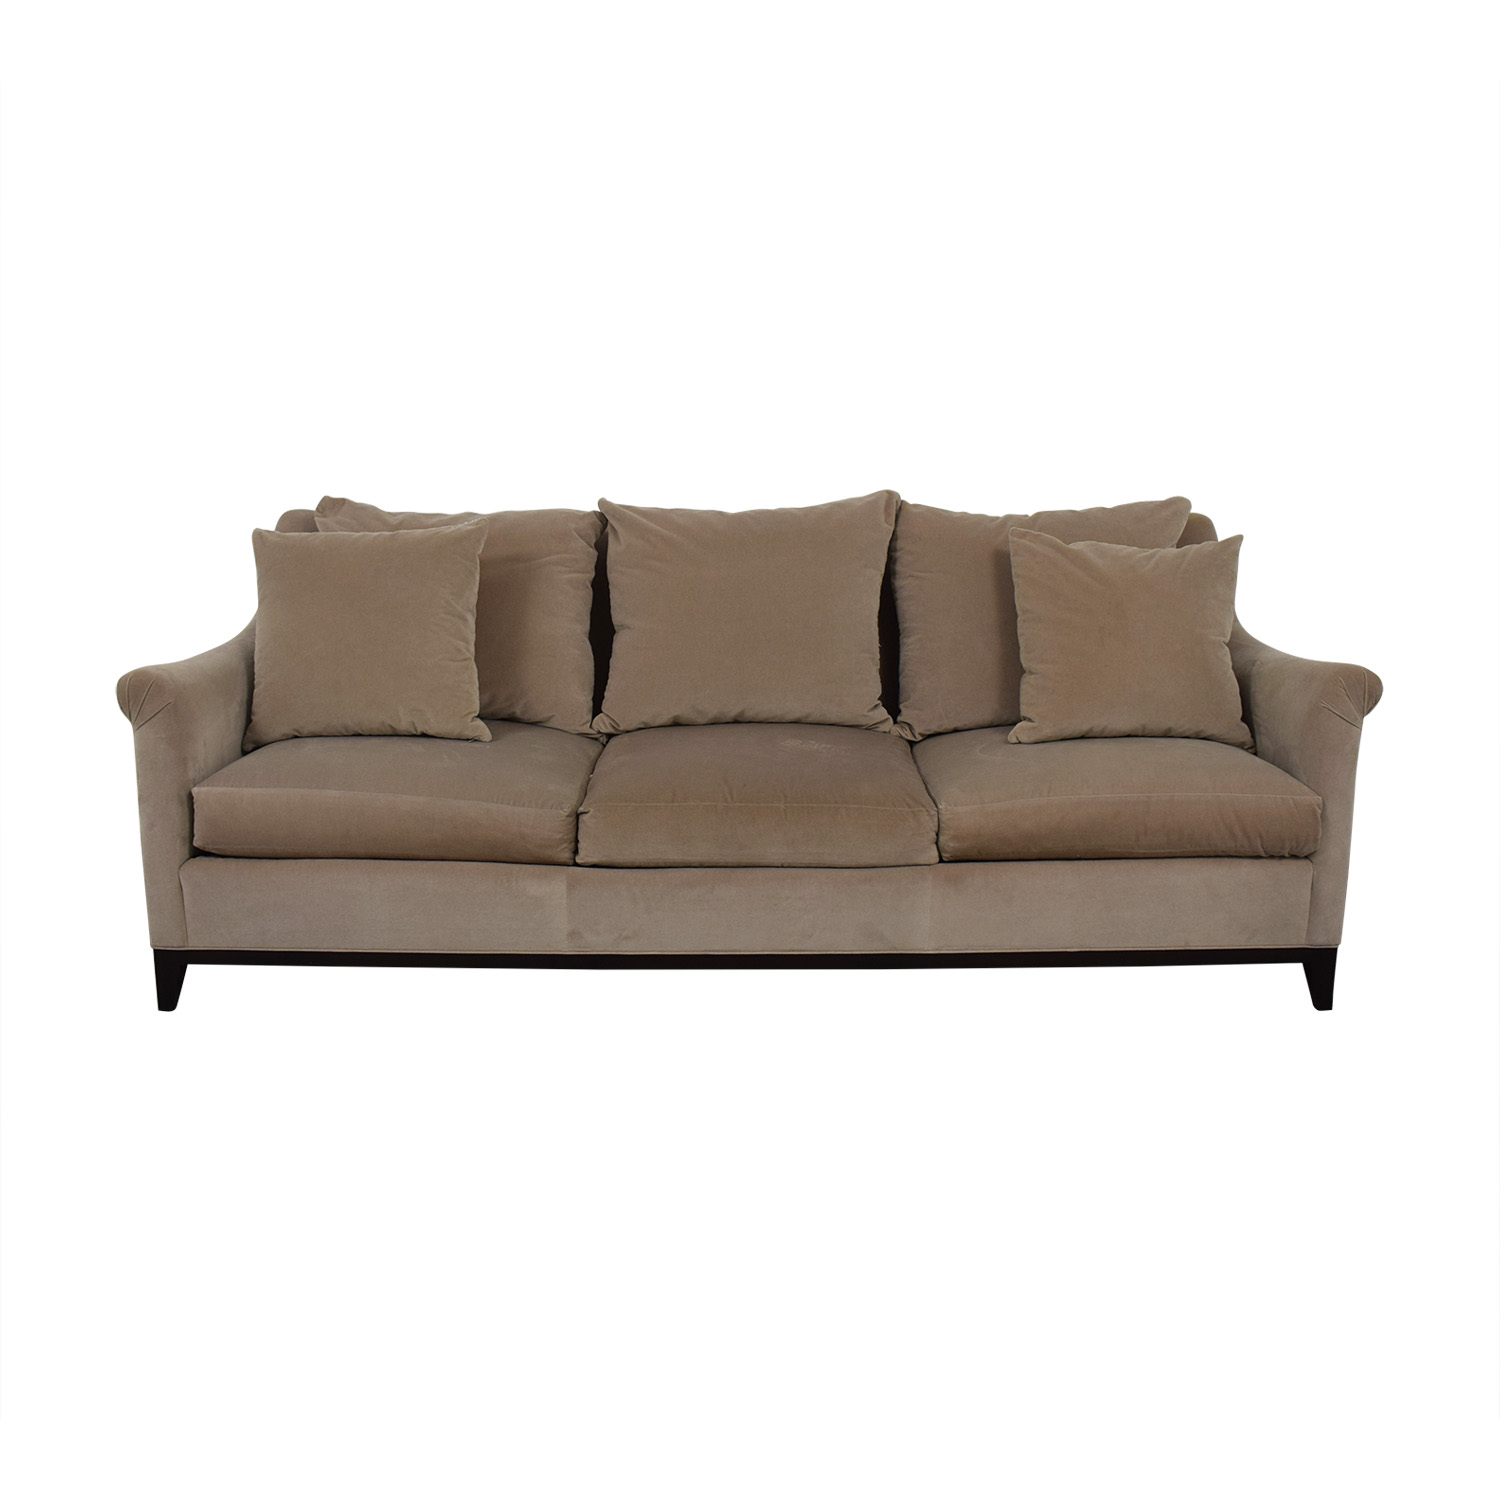 Hickory Chair Hickory Chair Jules Sofa coupon